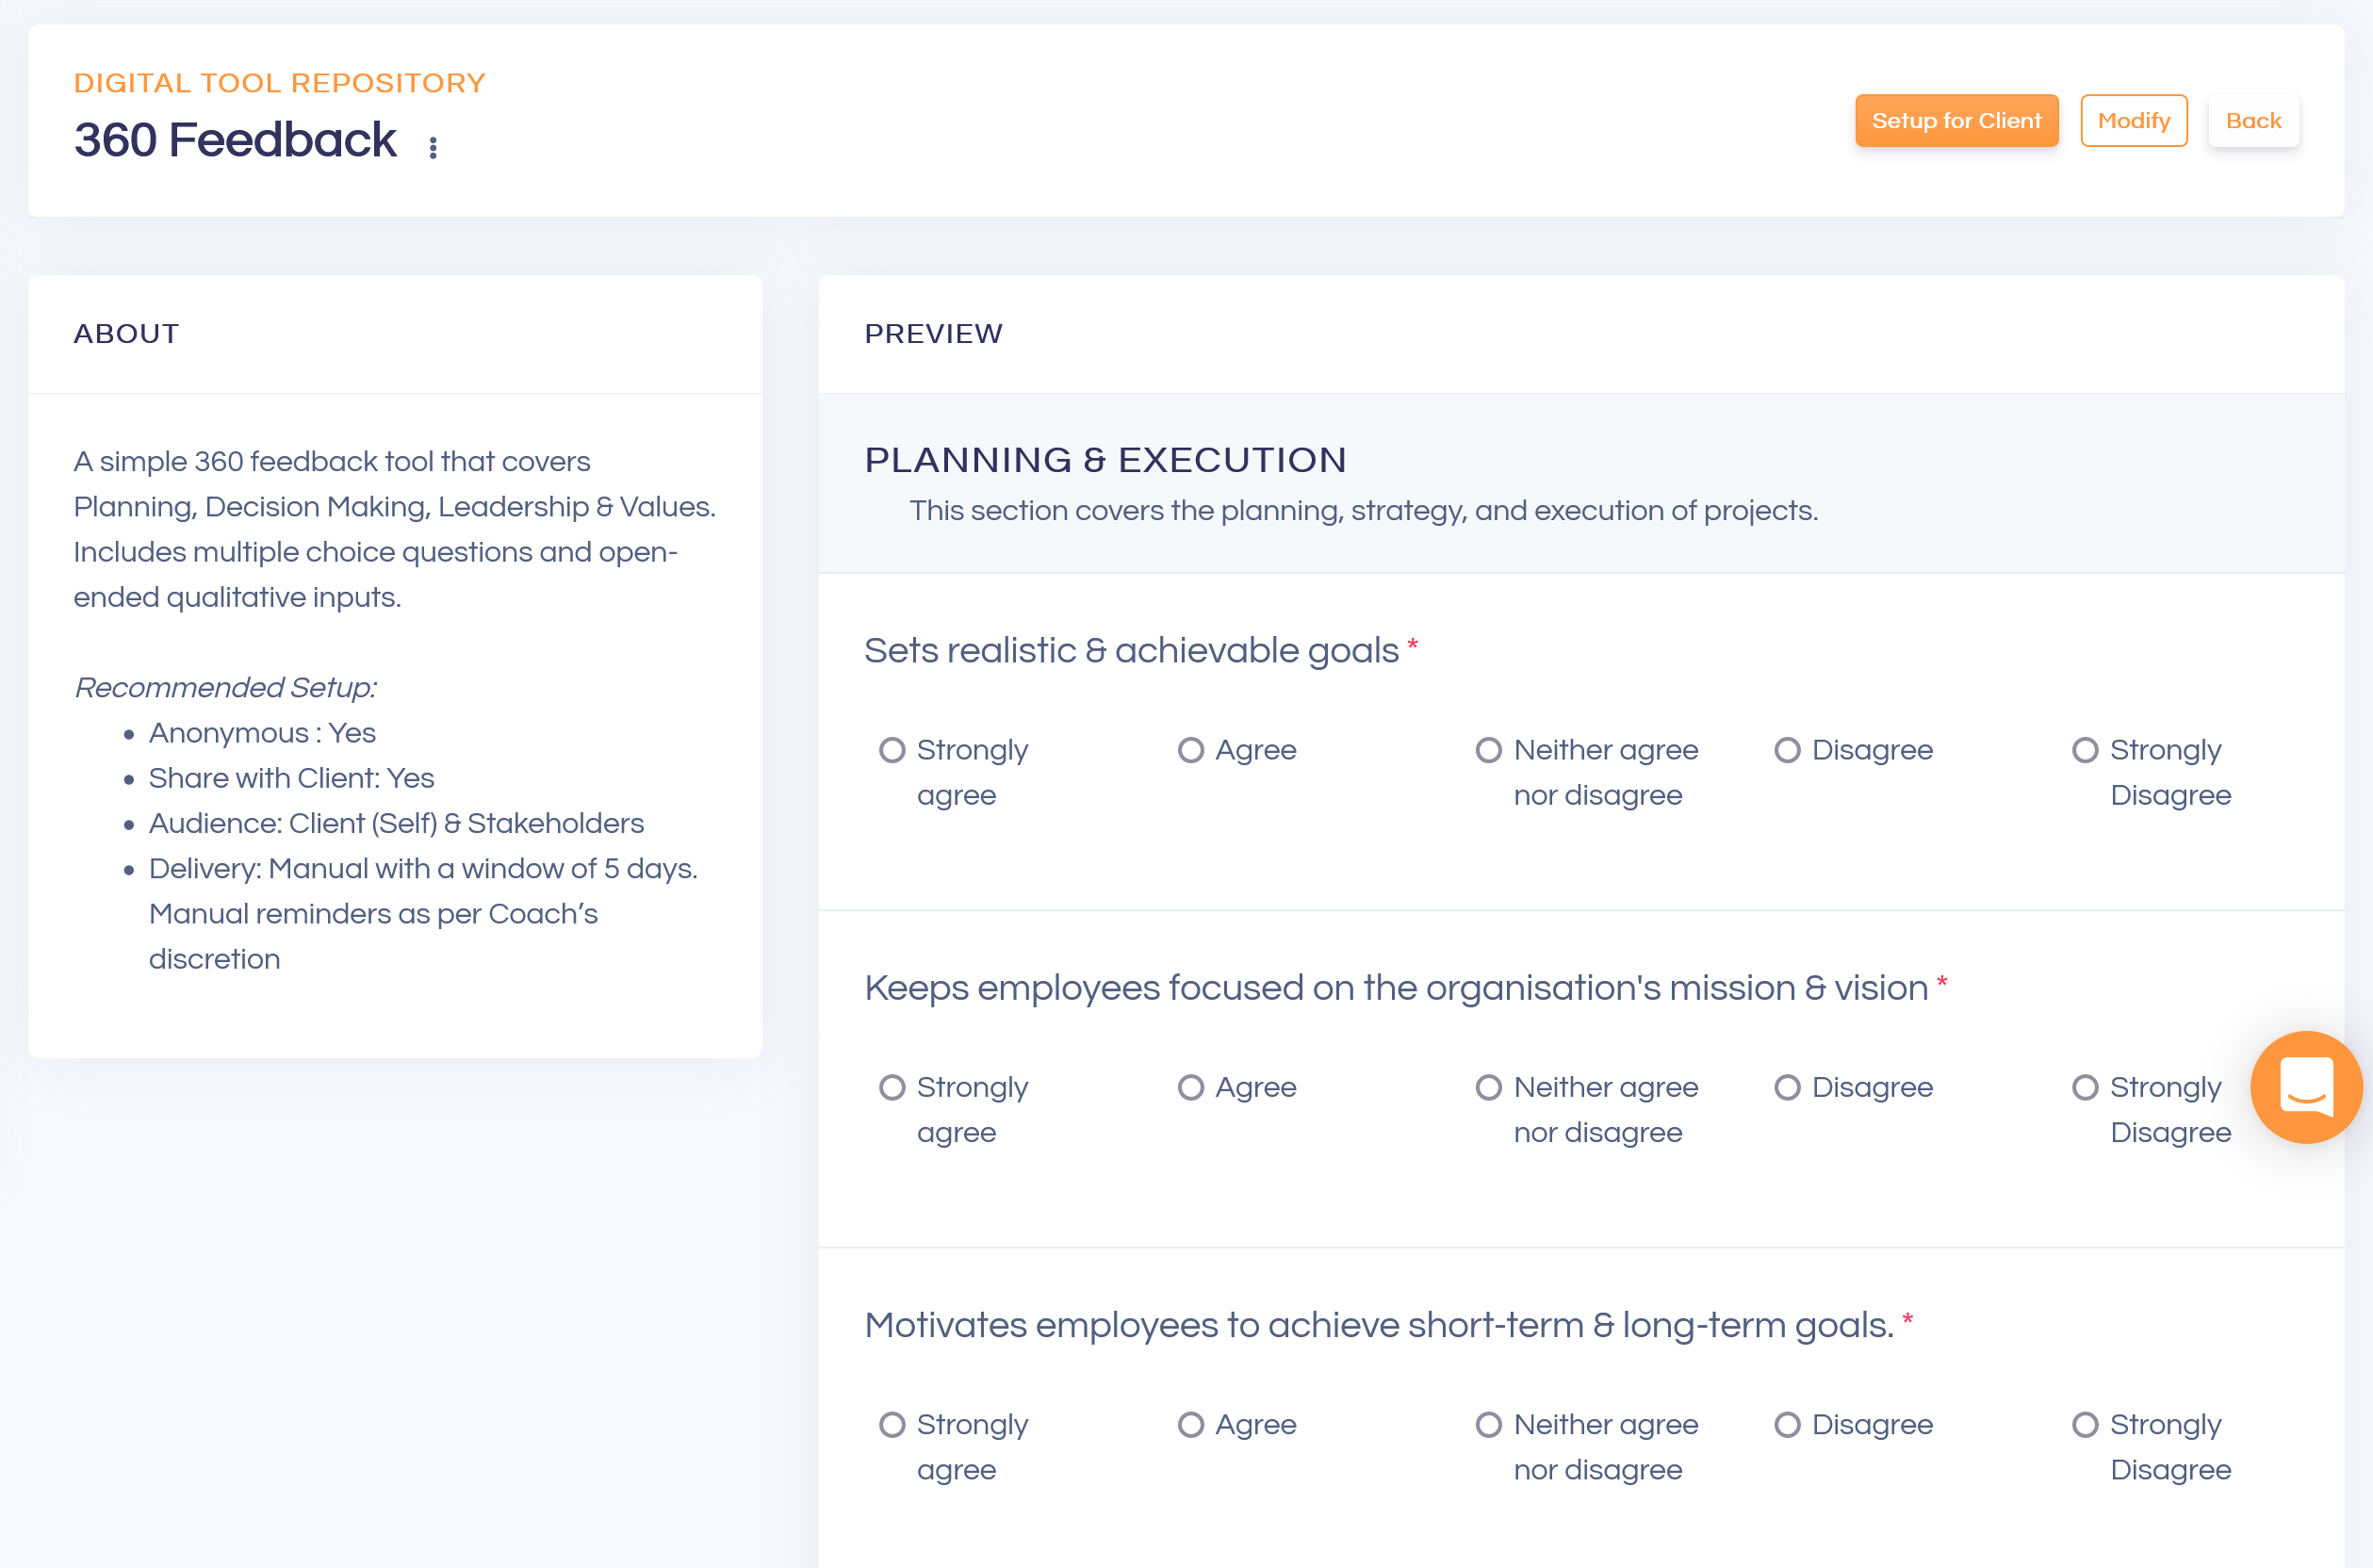 Digital Tool Repository: Build entirely custom forms, assessments, send & collect responses automatically from coachees & their stakeholders directly on the platform, track and gain insights from the responses to drive greater outcomes for more clients!